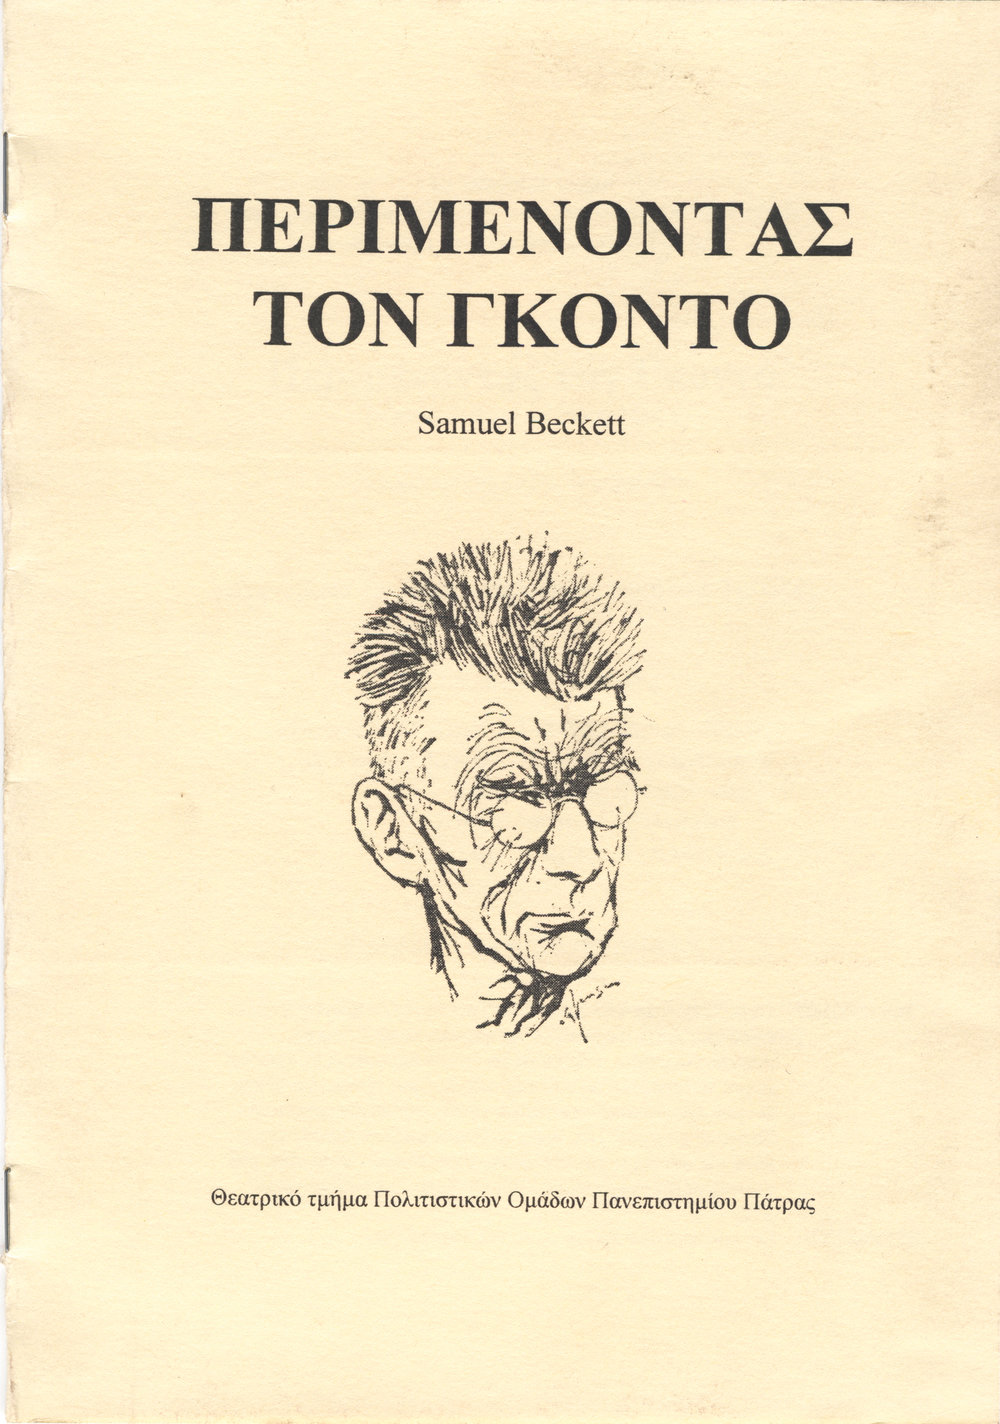 1997 Waiting for Godot by Samuel Beckett Program Front Cover.jpg